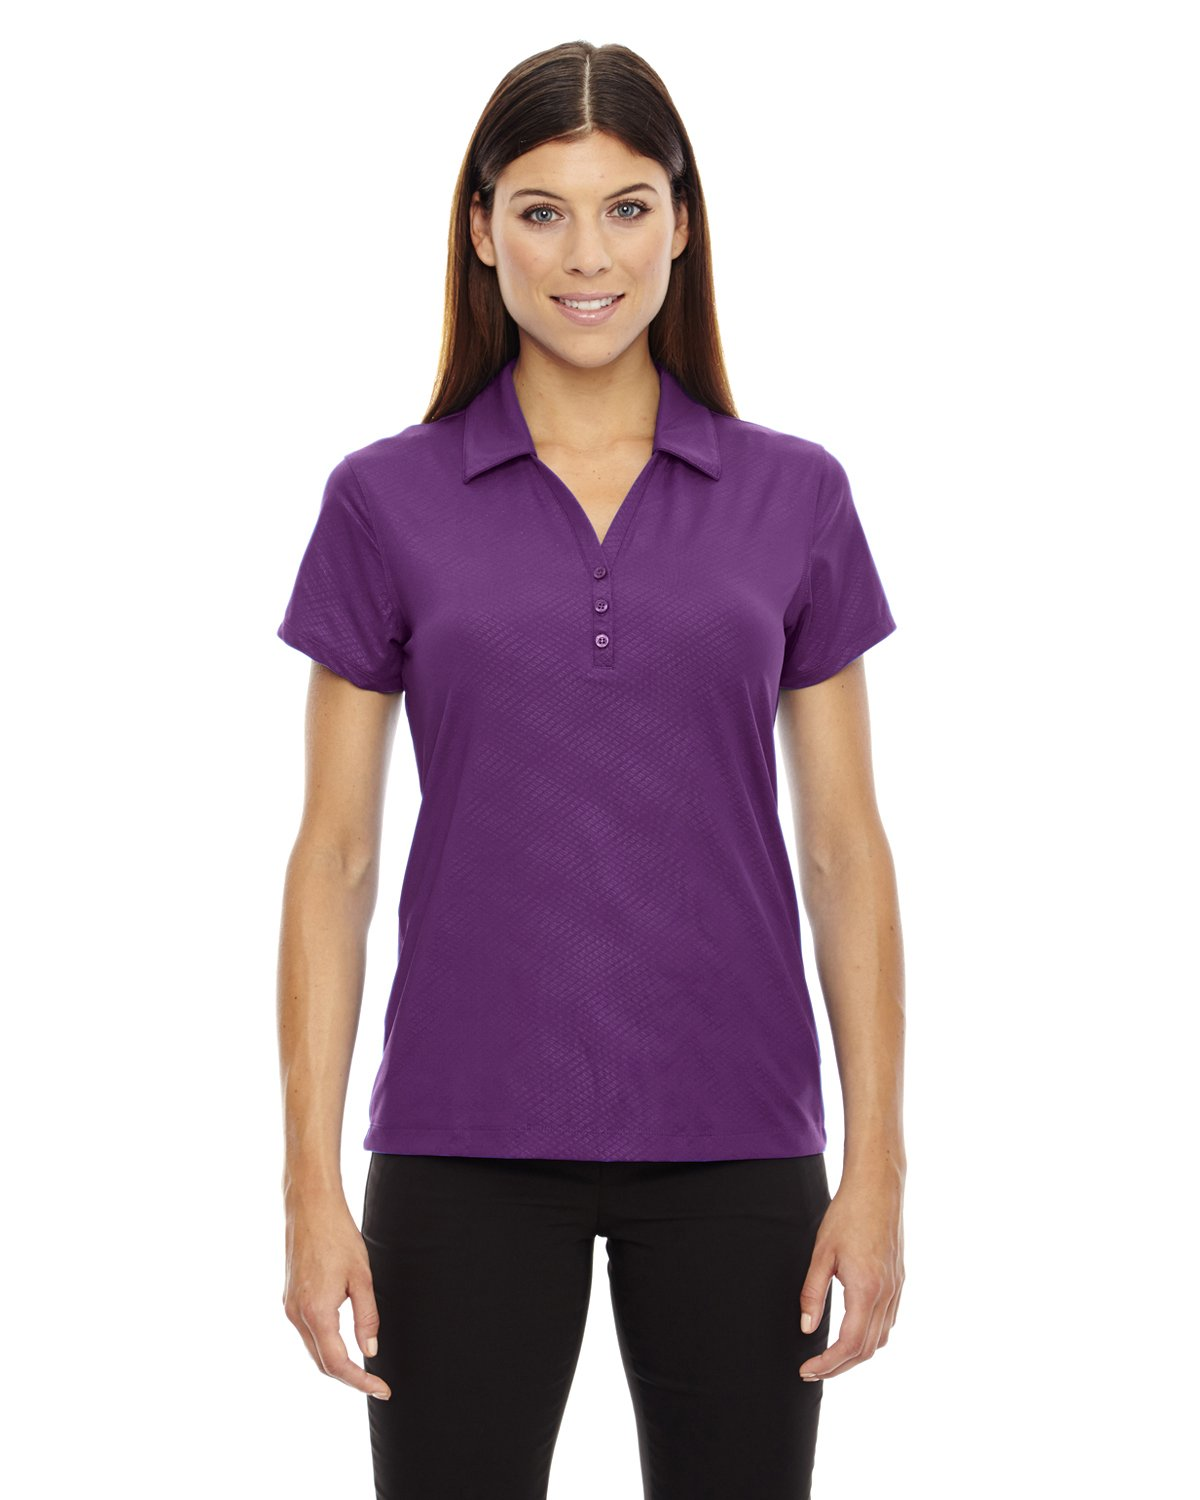 Ash City Ladies Maze Stretch Polo (XX-Large, Mulberry Purple) by Ash City Apparel